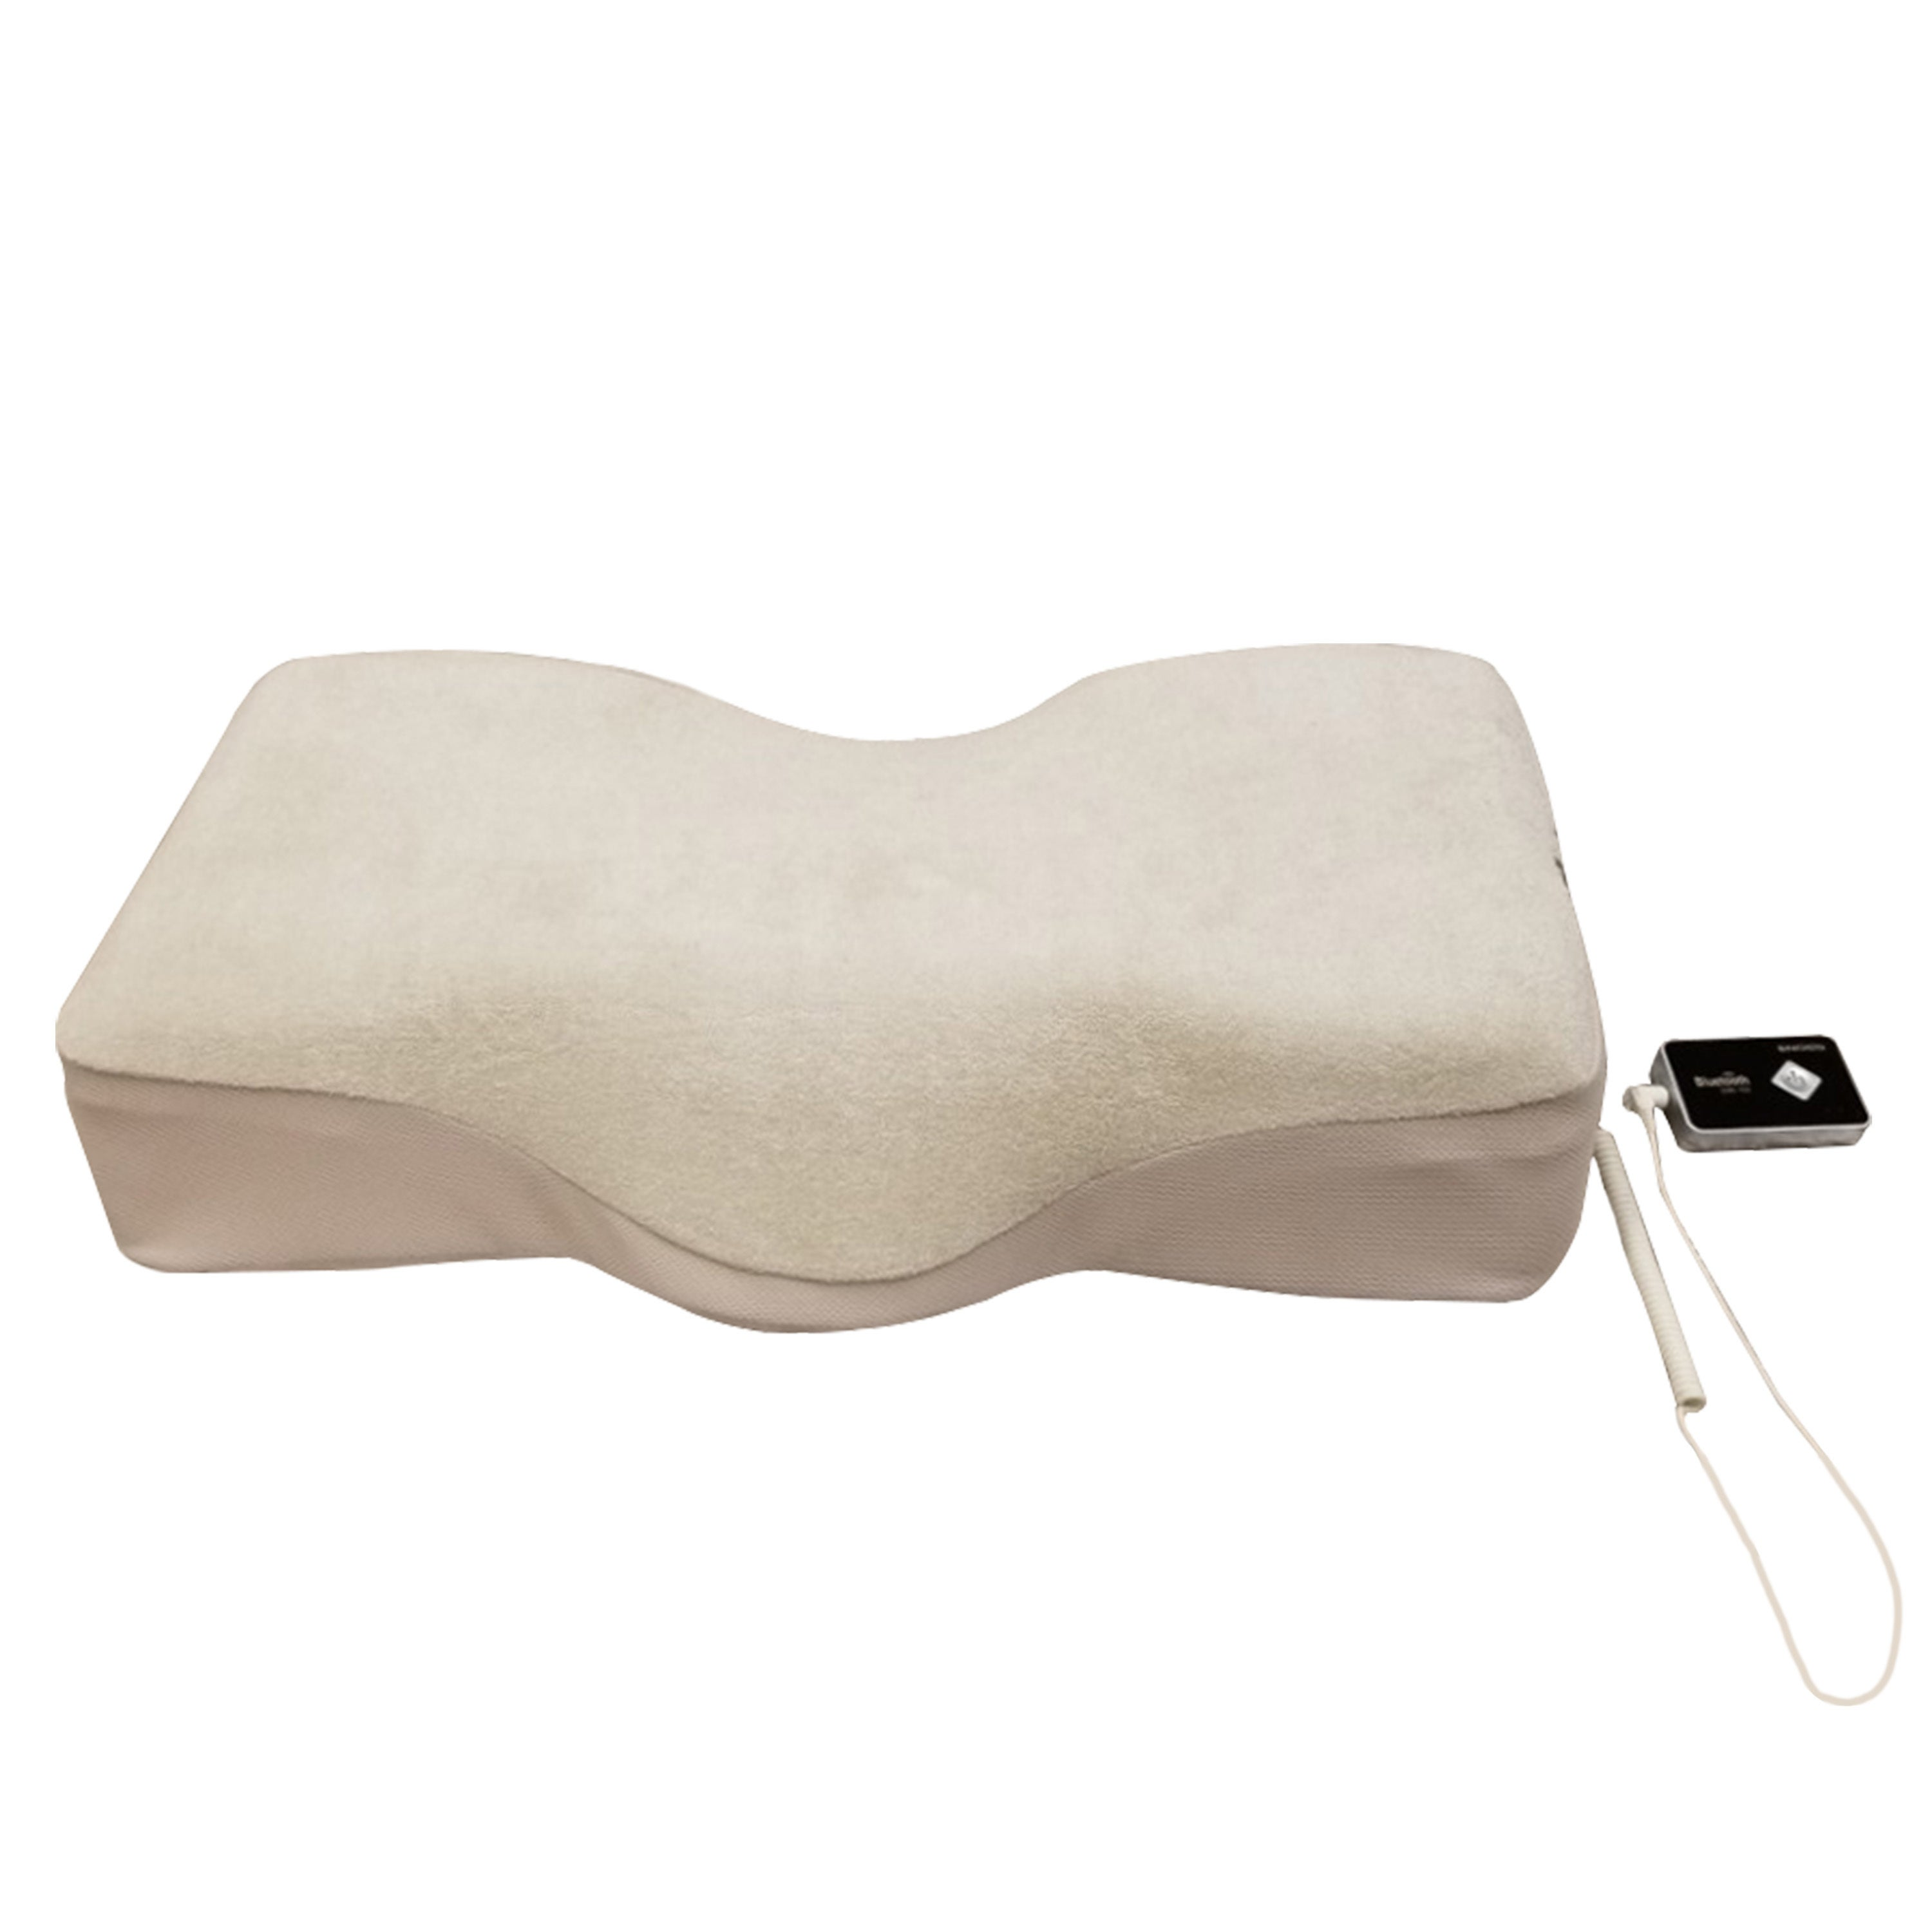 king contour w white decorative pillows x cool willow the foam therapeutic gel memory bed l infused collections pillow